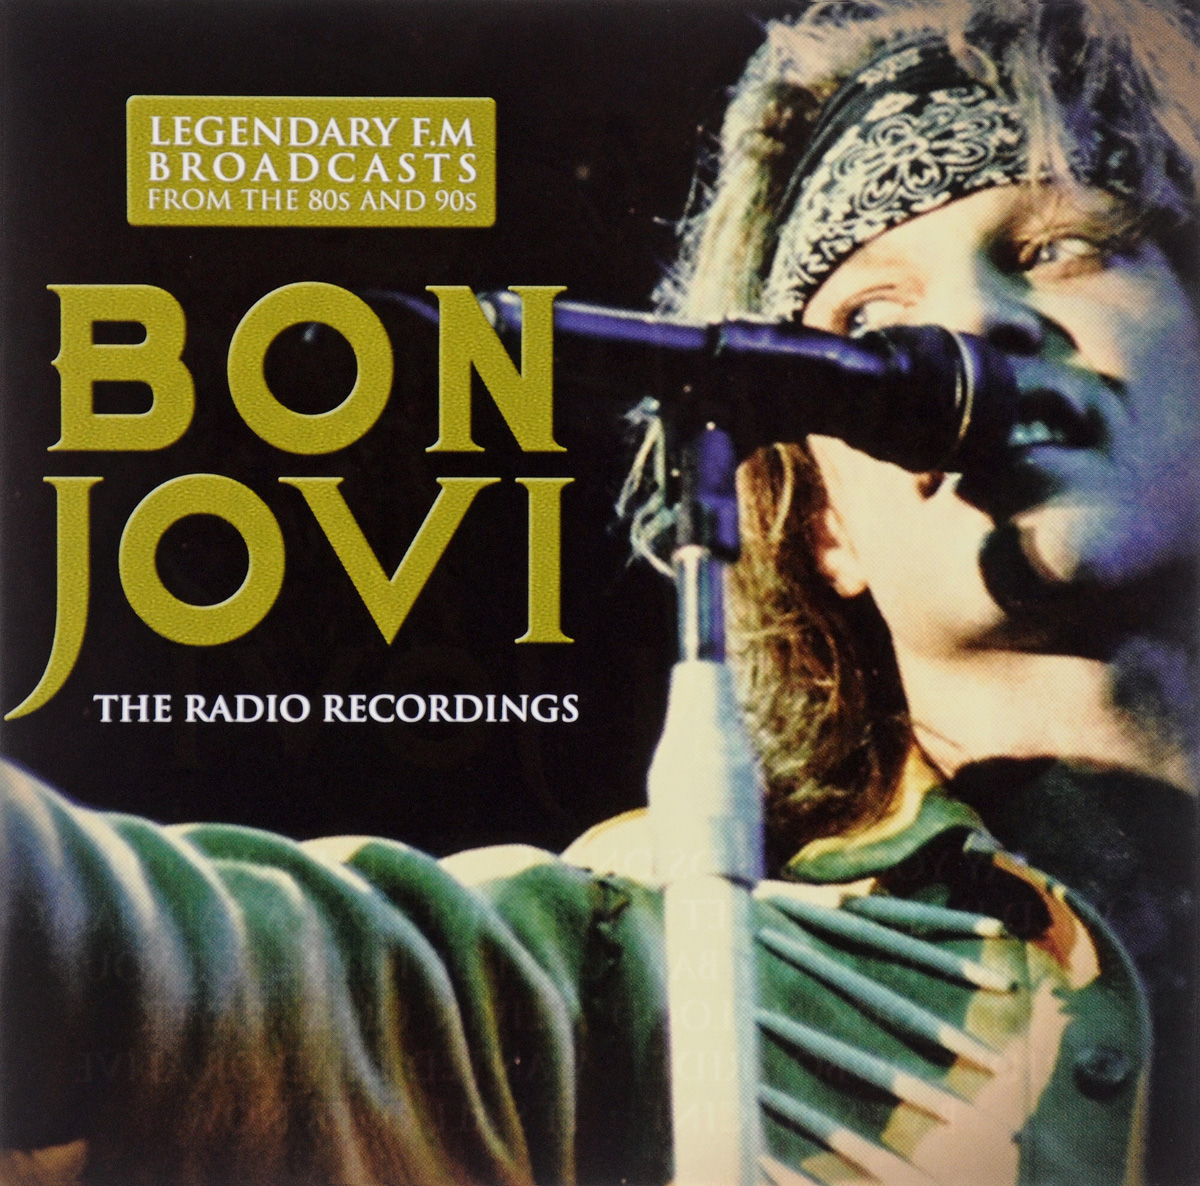 Bon Jovi. The Radio Recordings